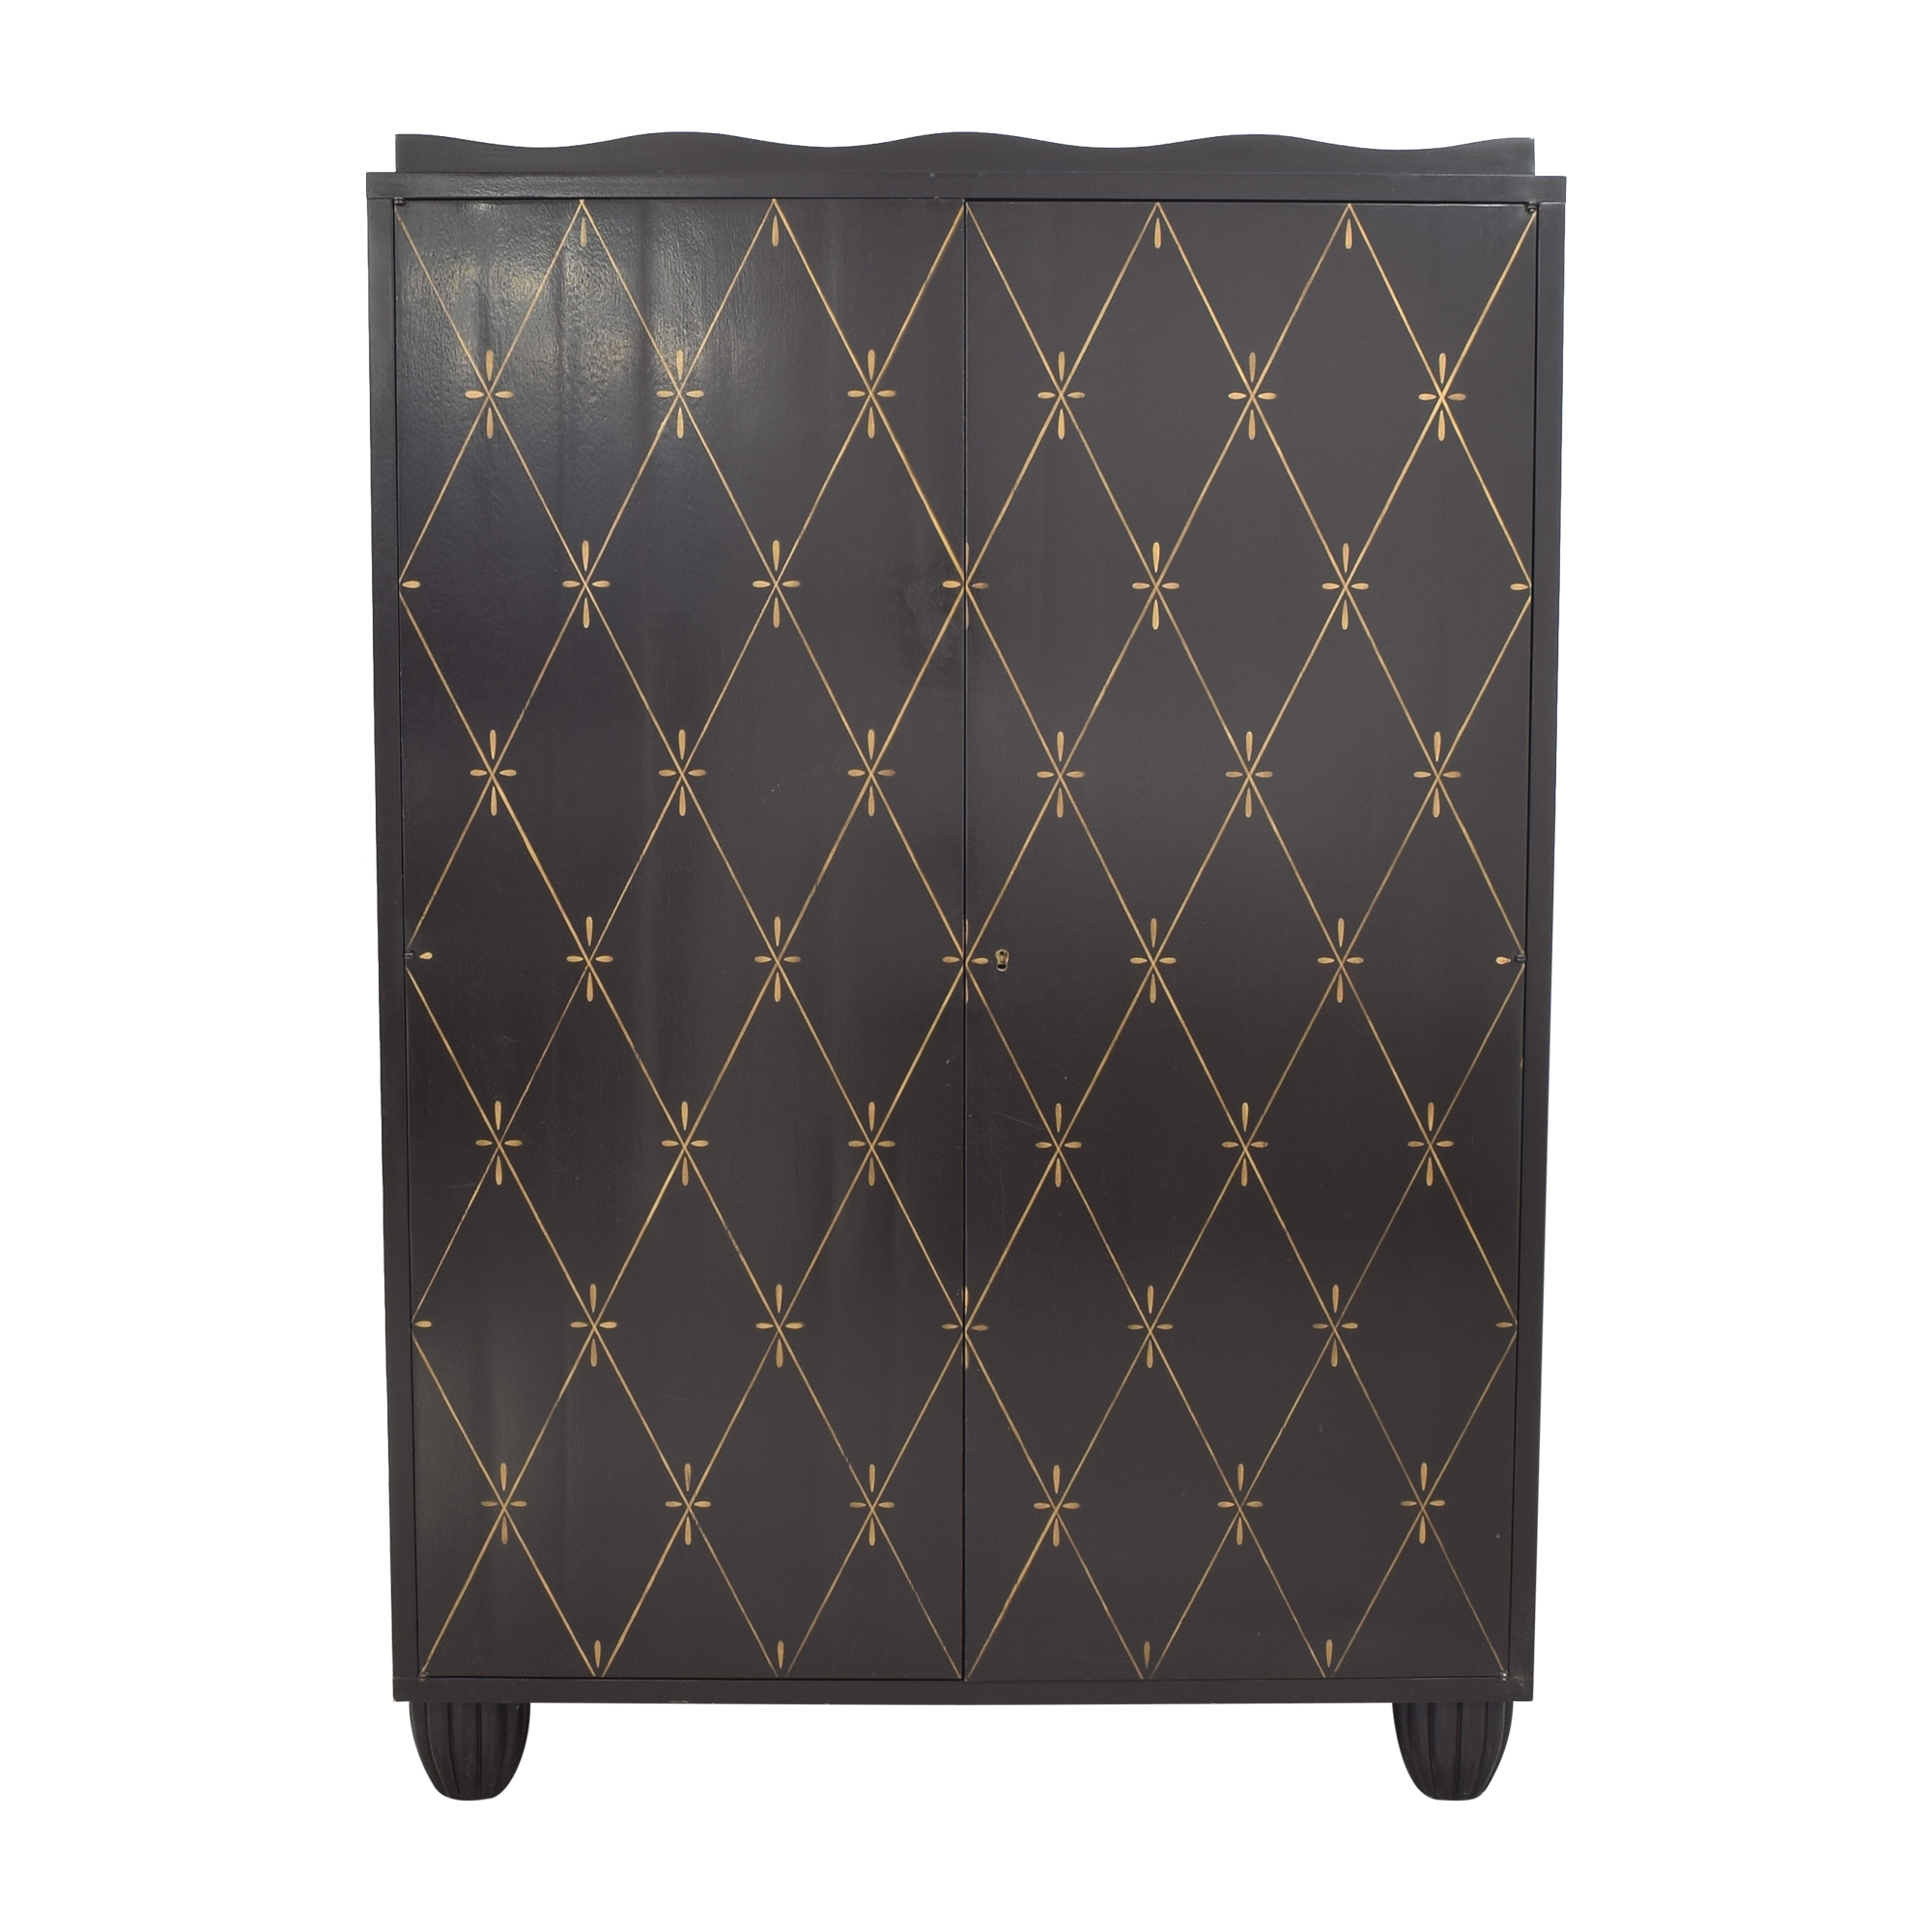 Baker Furniture Barbara Barry for Baker Furniture Armoire discount